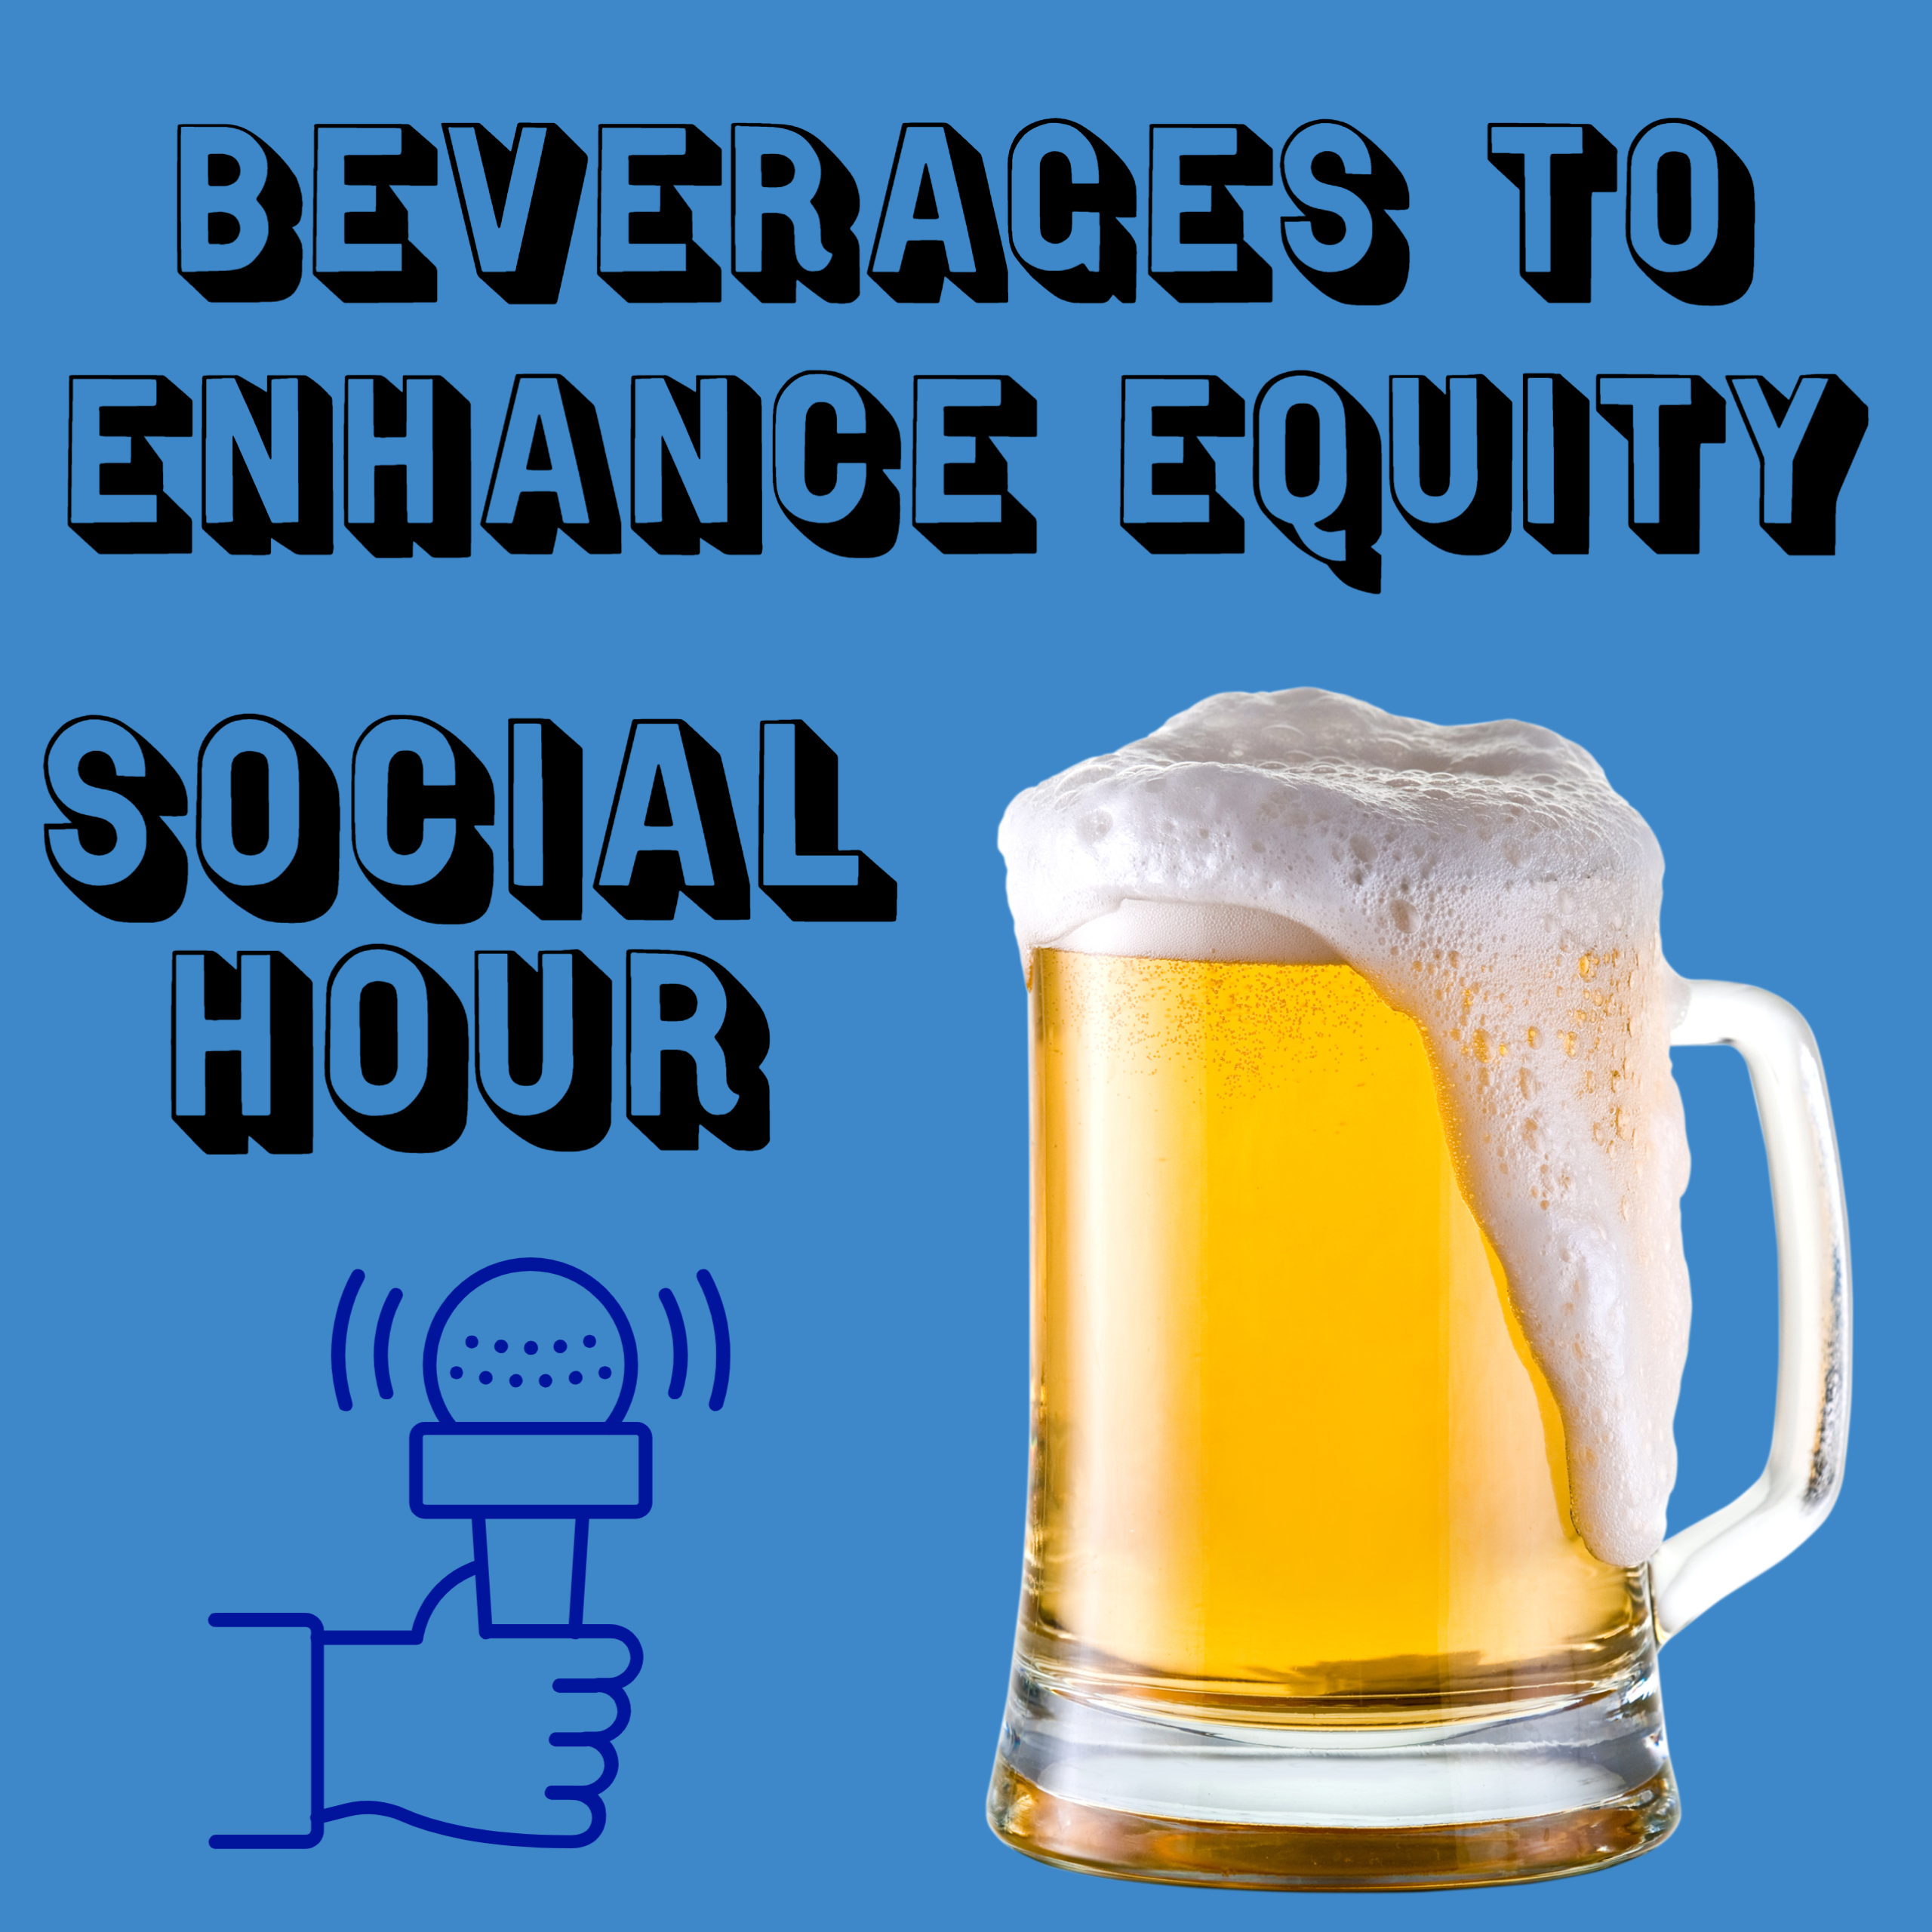 Image of a beer on a blue background with the text beverages to enhance equity social hour